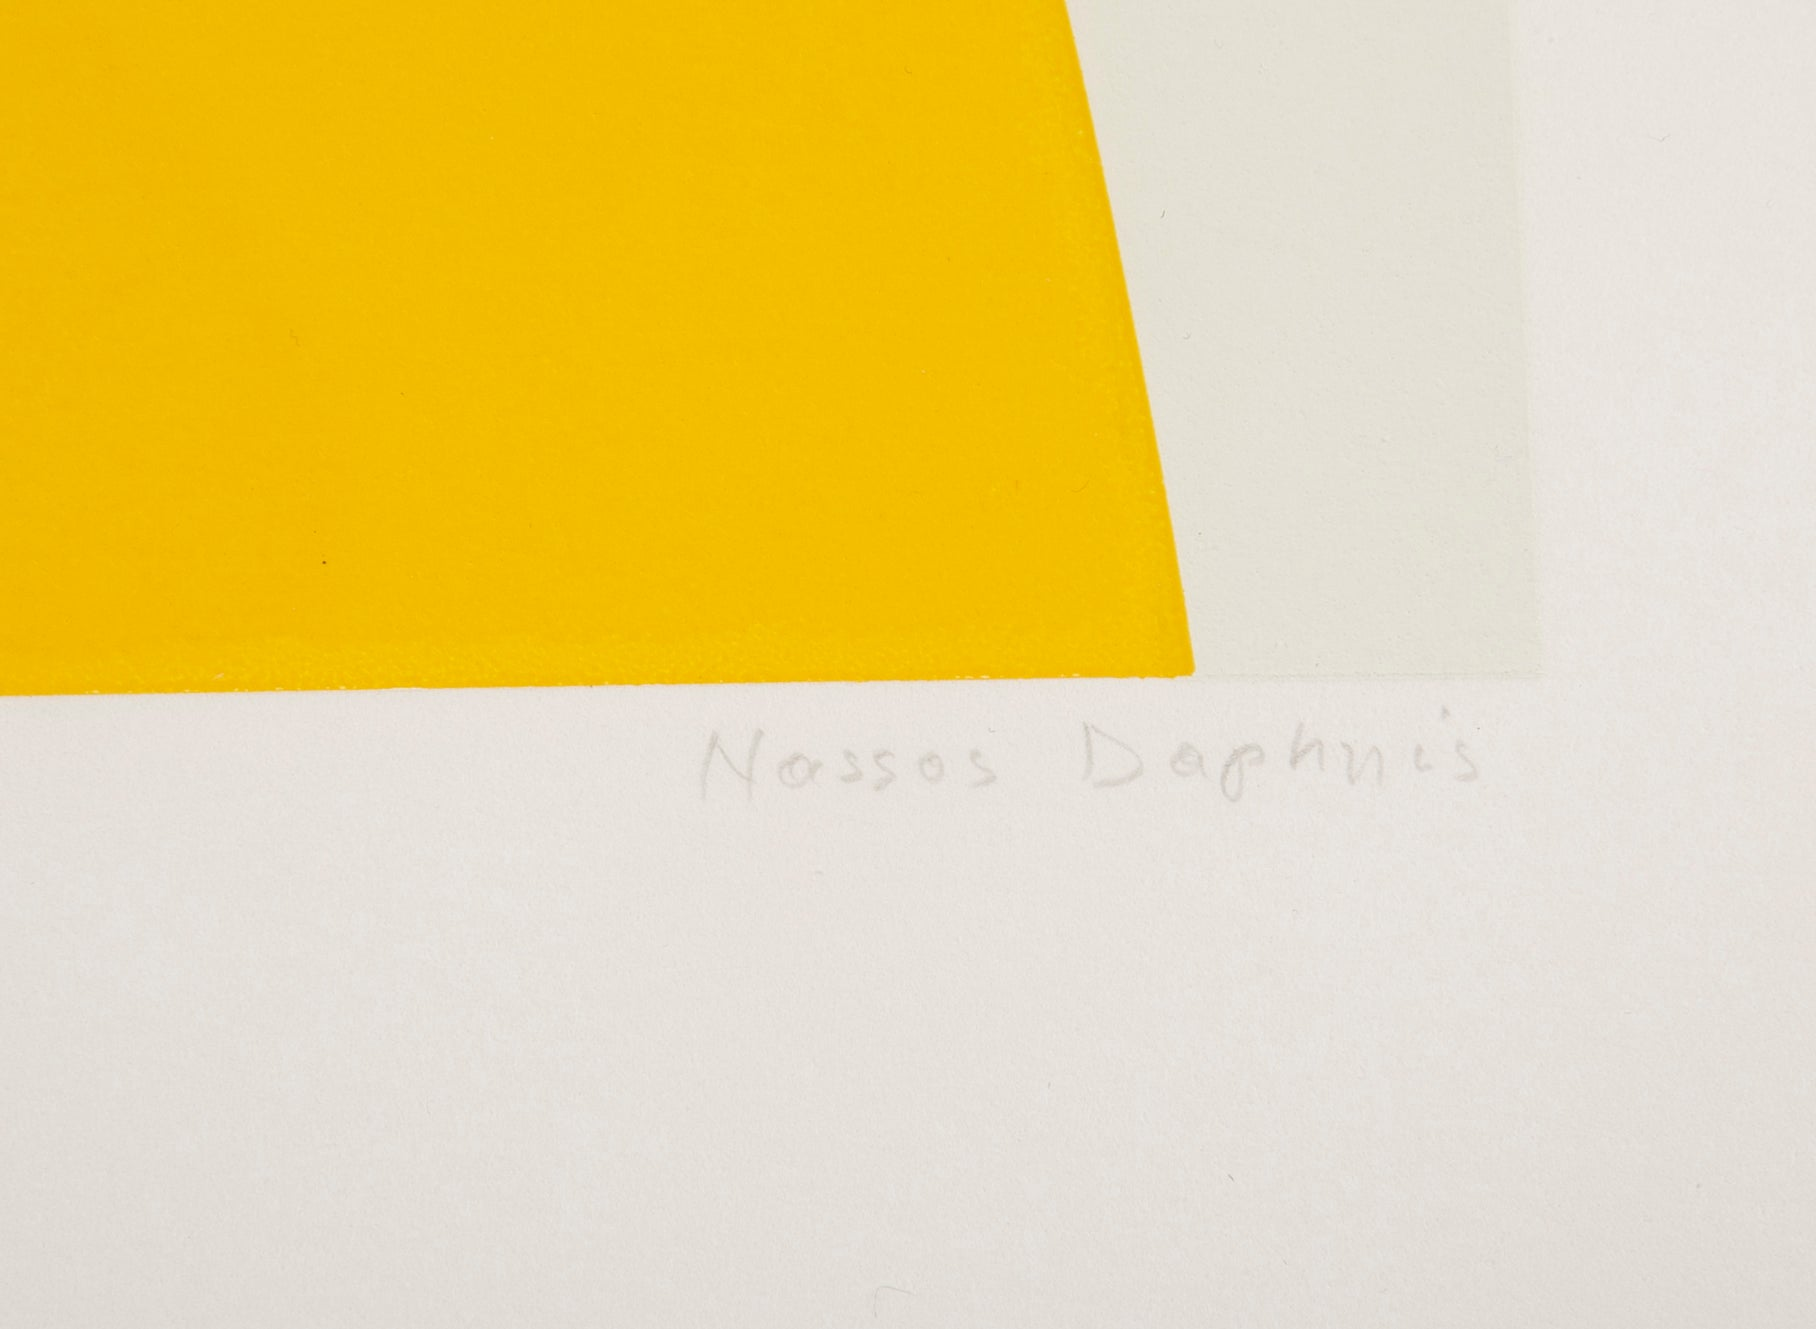 Set of Three Signed & Numbered Silkscreens by Nassos Daphnis